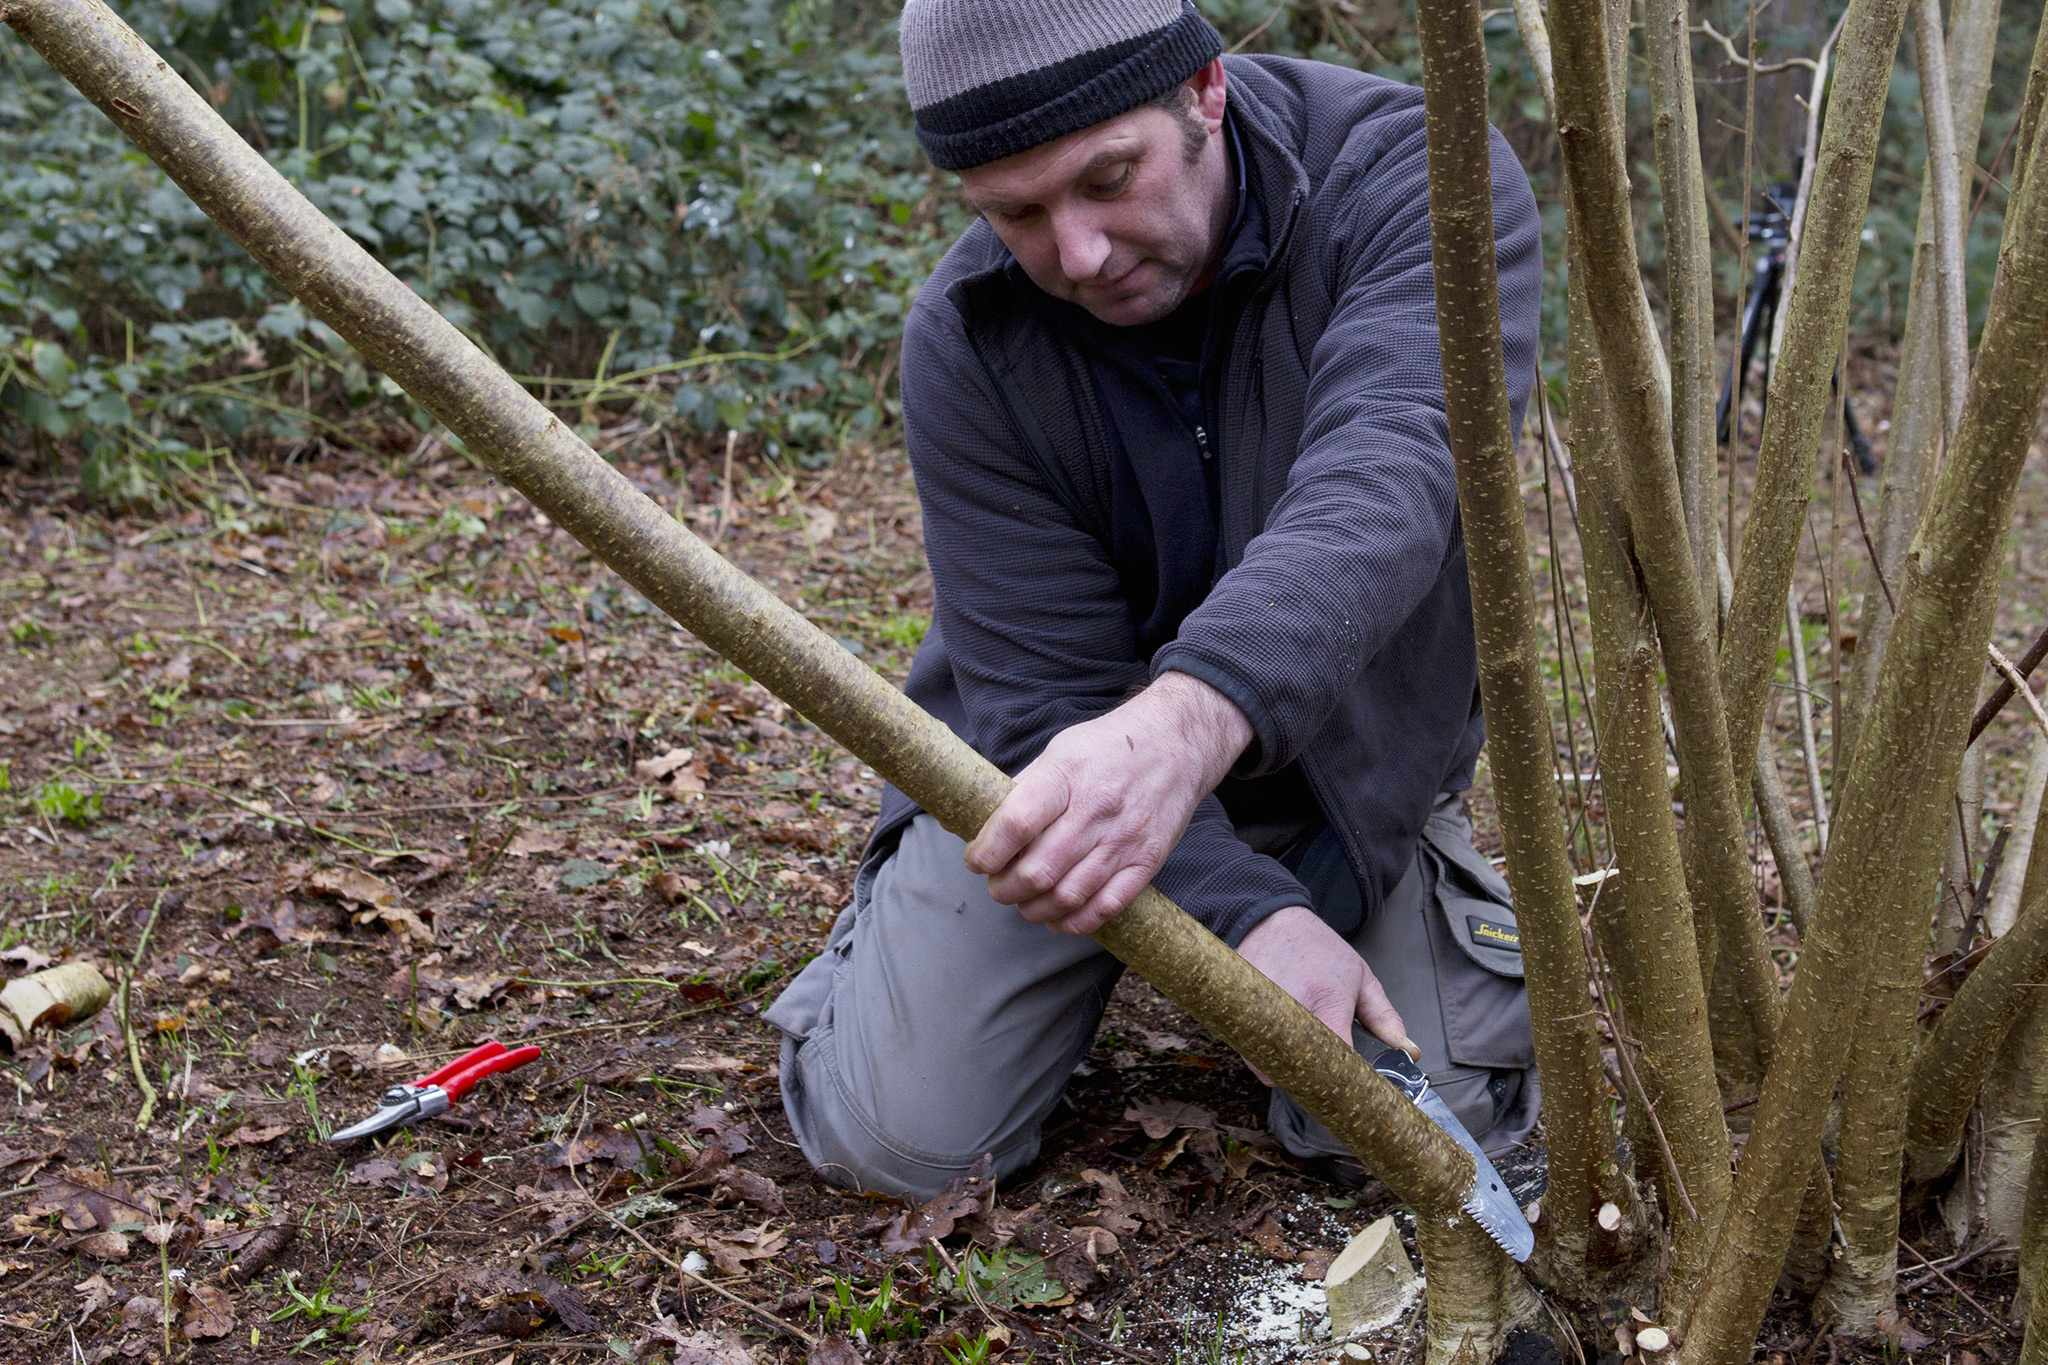 Coppicing hazel (photo credit: Royal Botanic Gardens, Kew)